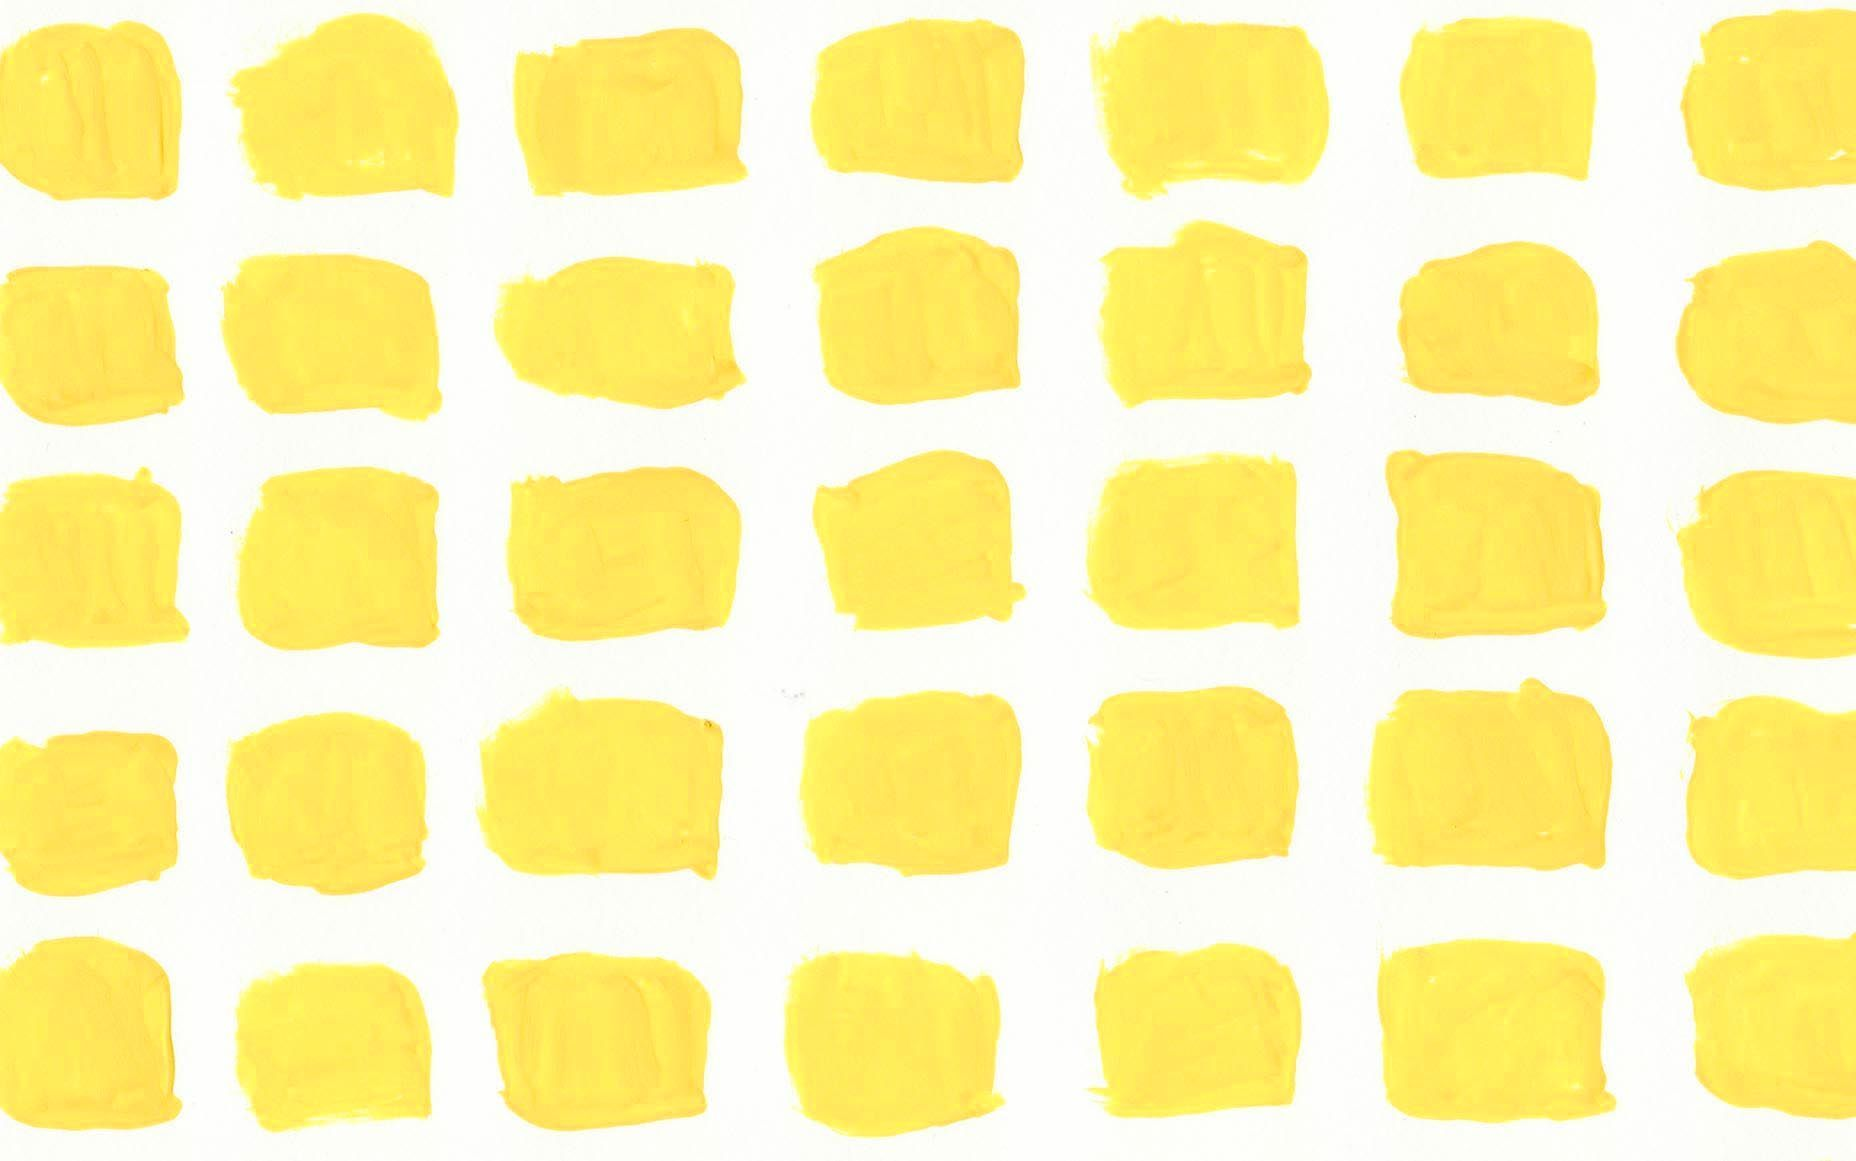 Yellow Aesthetic Computer Wallpapers Top Free Yellow Aesthetic Computer Backgrounds Wallpaperacces Yellow Aesthetic Dress Your Tech Yellow Aesthetic Pastel